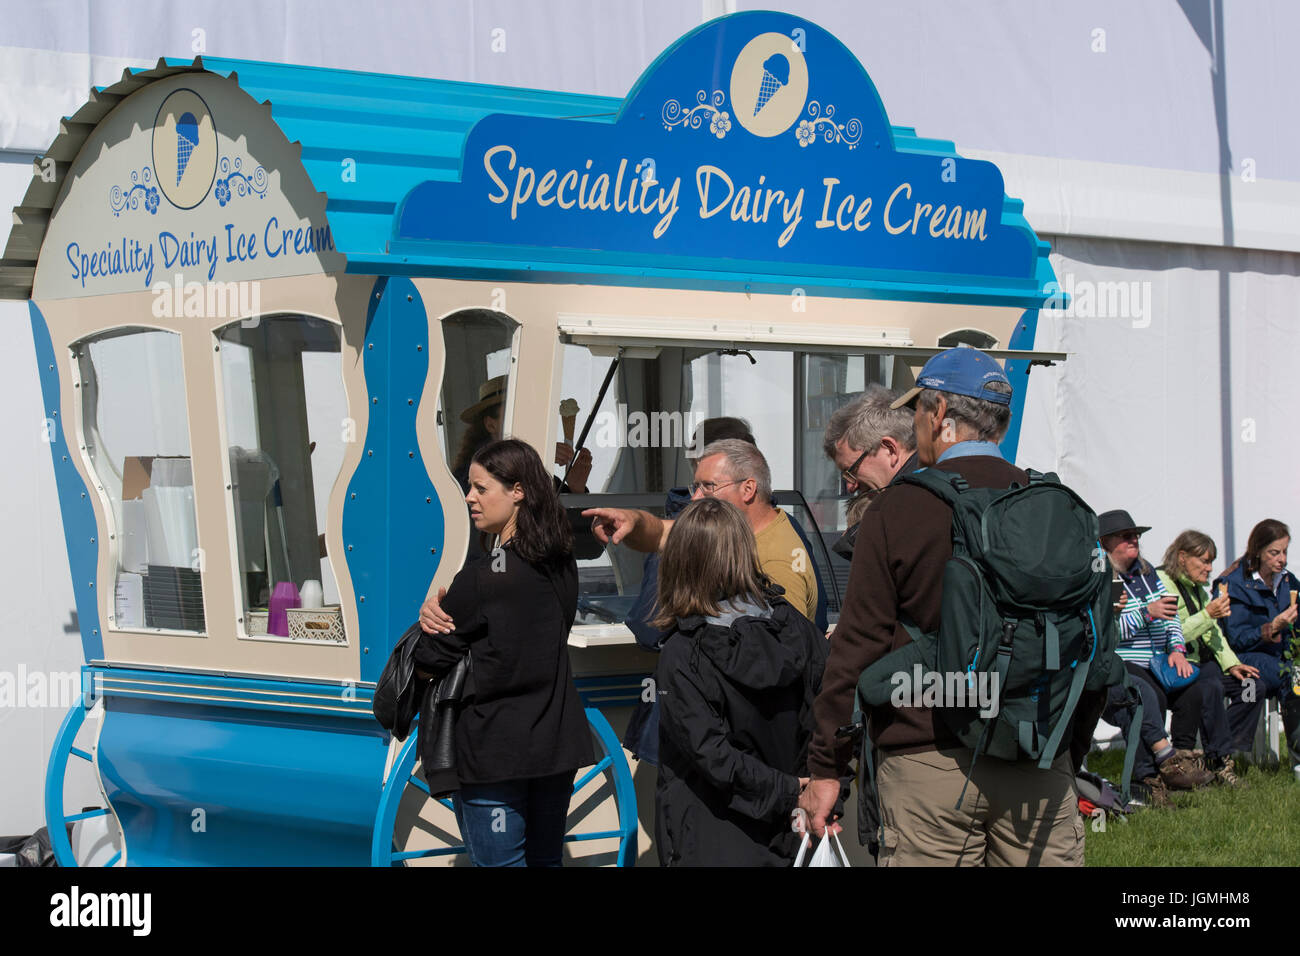 Quaint blue caravan selling ice cream to a queue of waiting people, parked at RHS Chatsworth Flower Show, Chatsworth - Stock Image